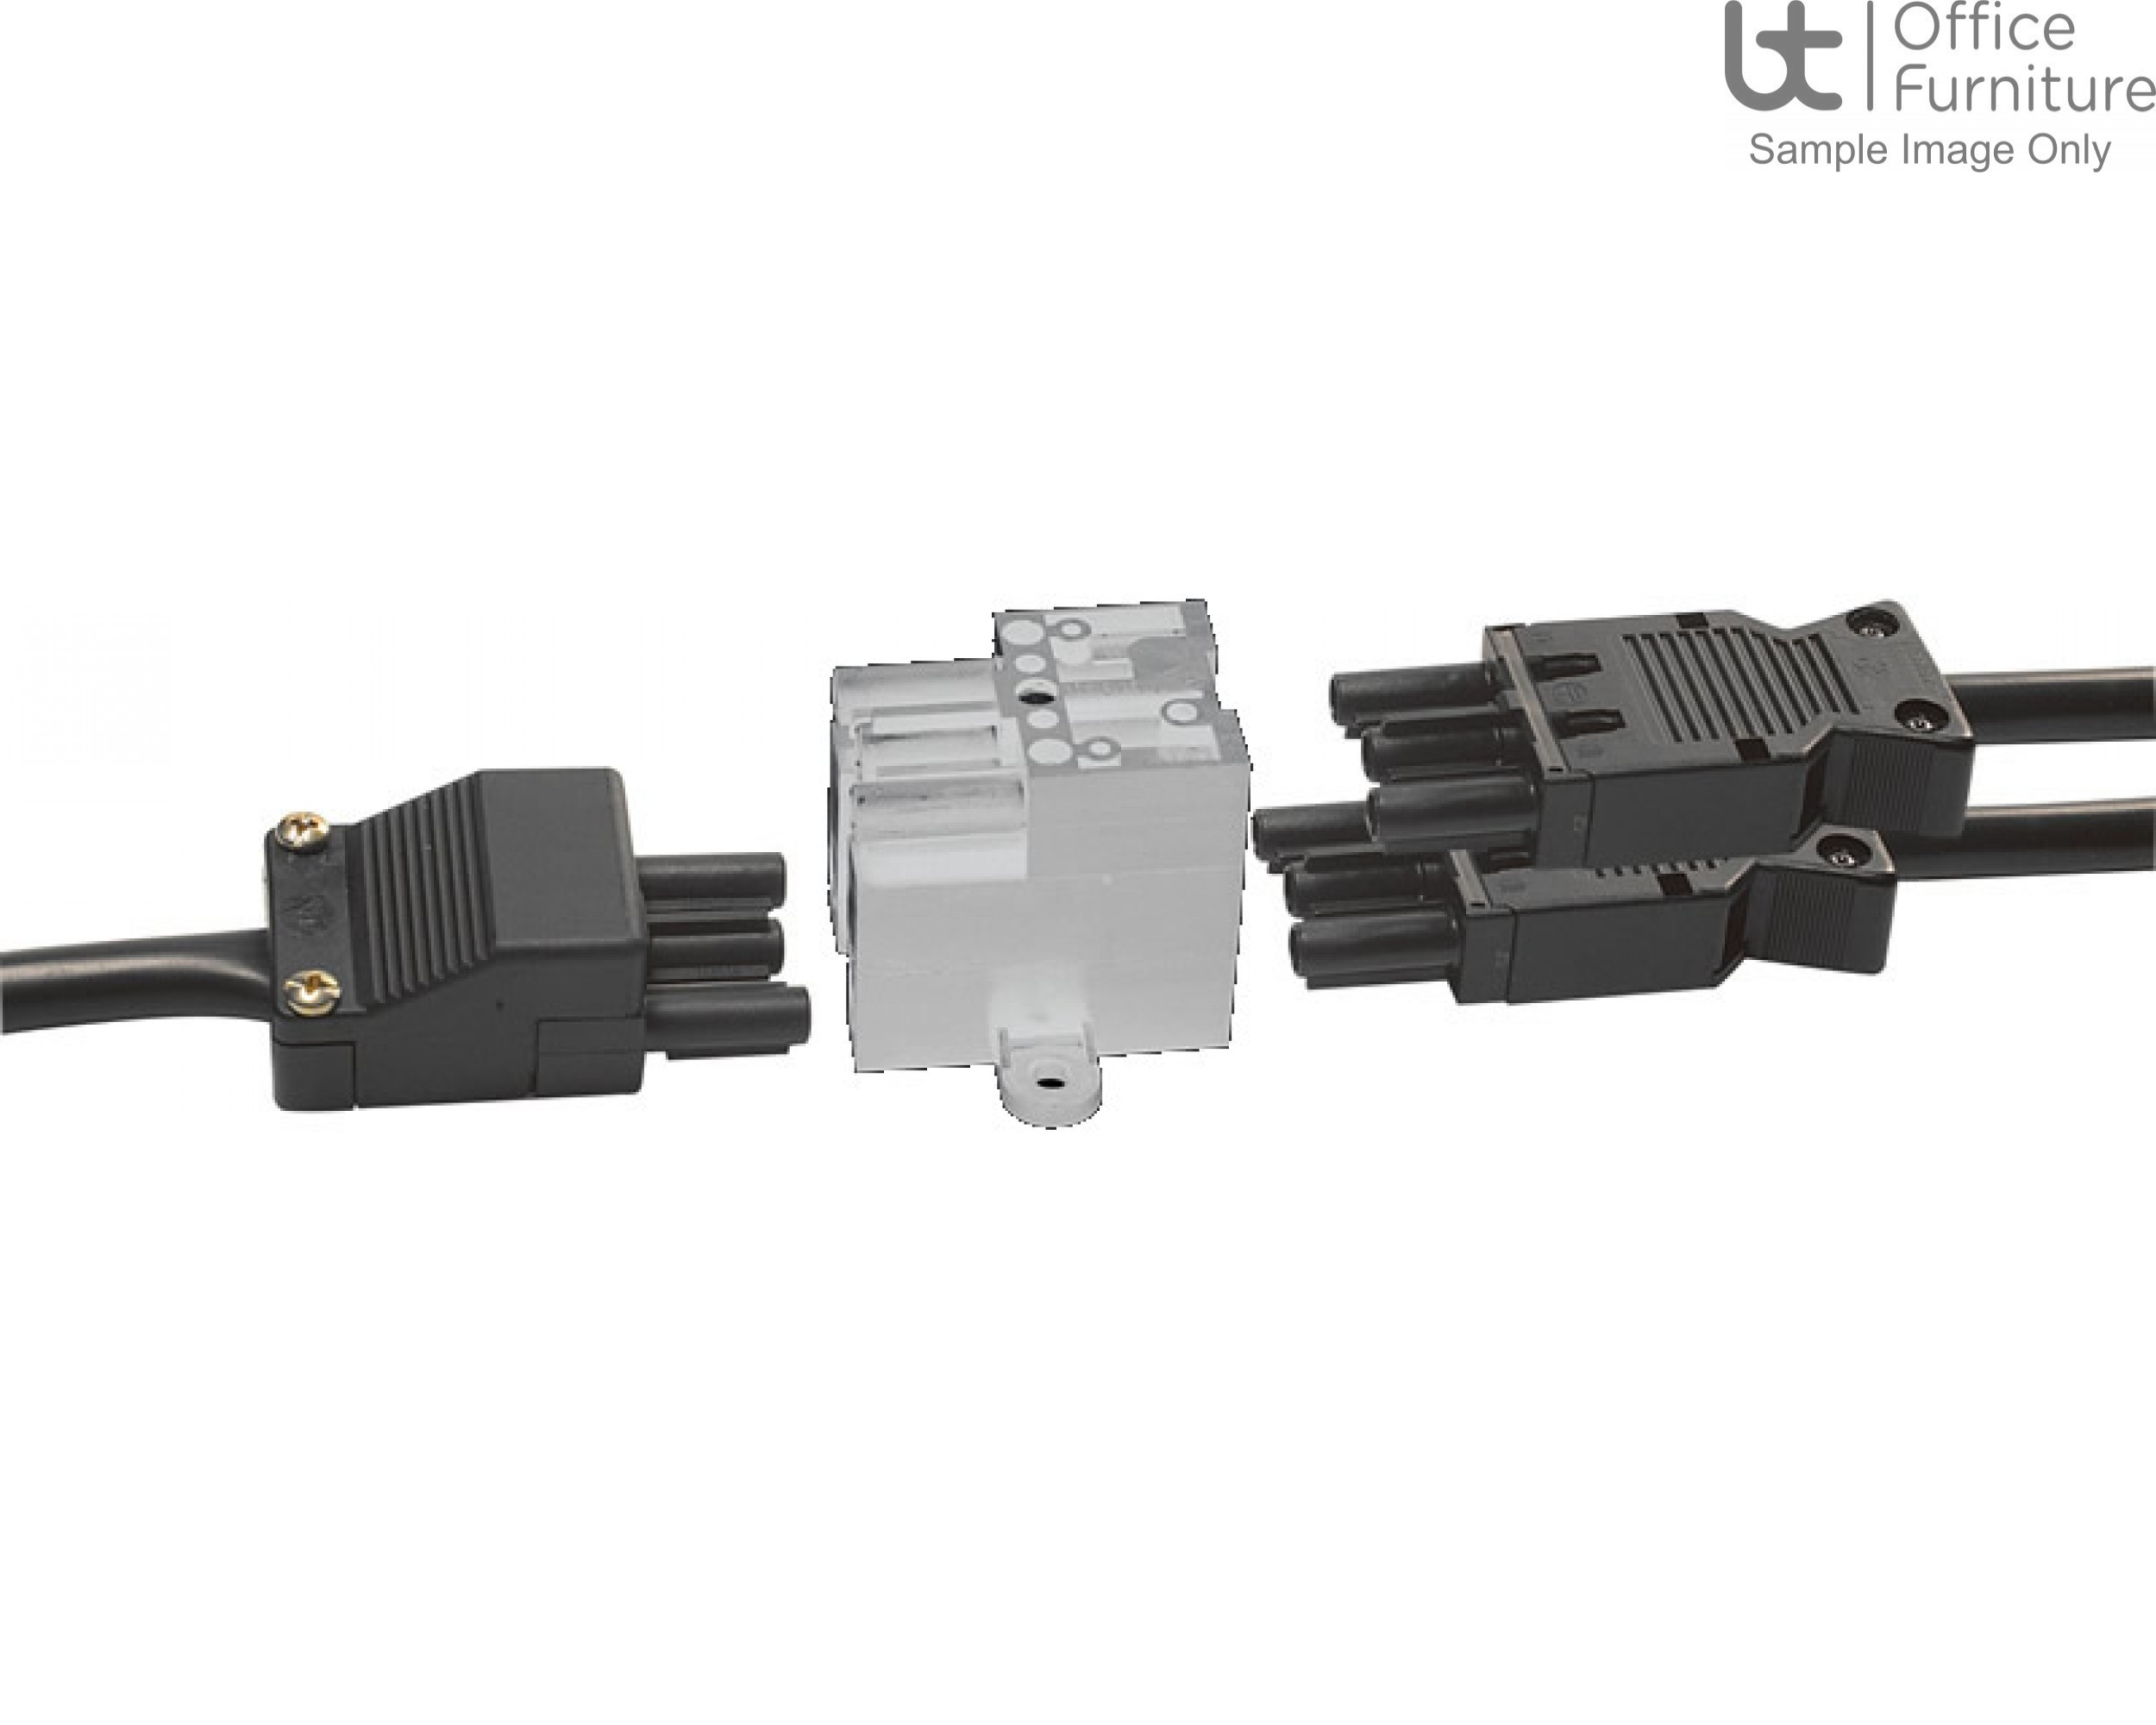 DMC Cable Accessories - White Extended splitter block, 1 GST input, 3 GST outputs